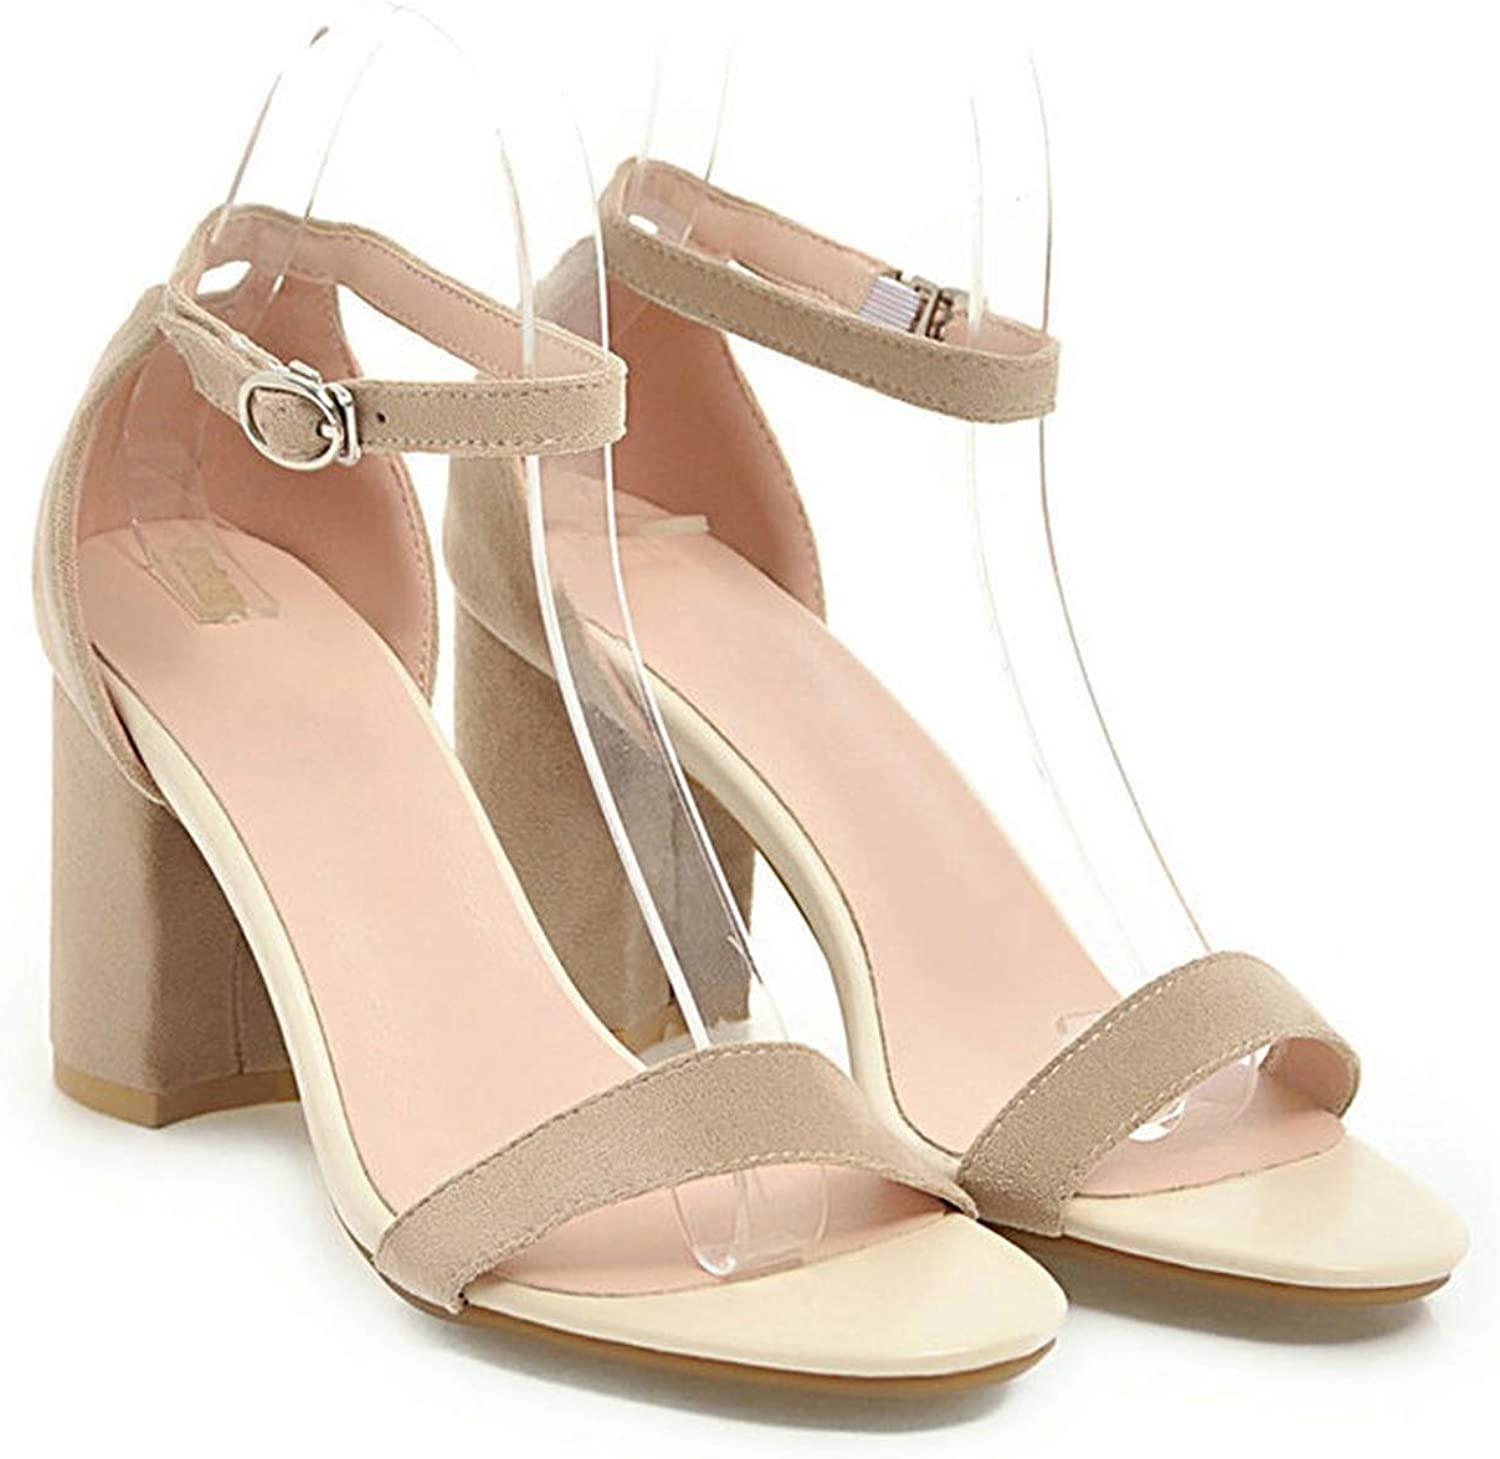 Shine-hearty Women Sandals Ankle Strappy Summer shoes Open Toe Chunky High Heels Sandals Party Dress Sandals